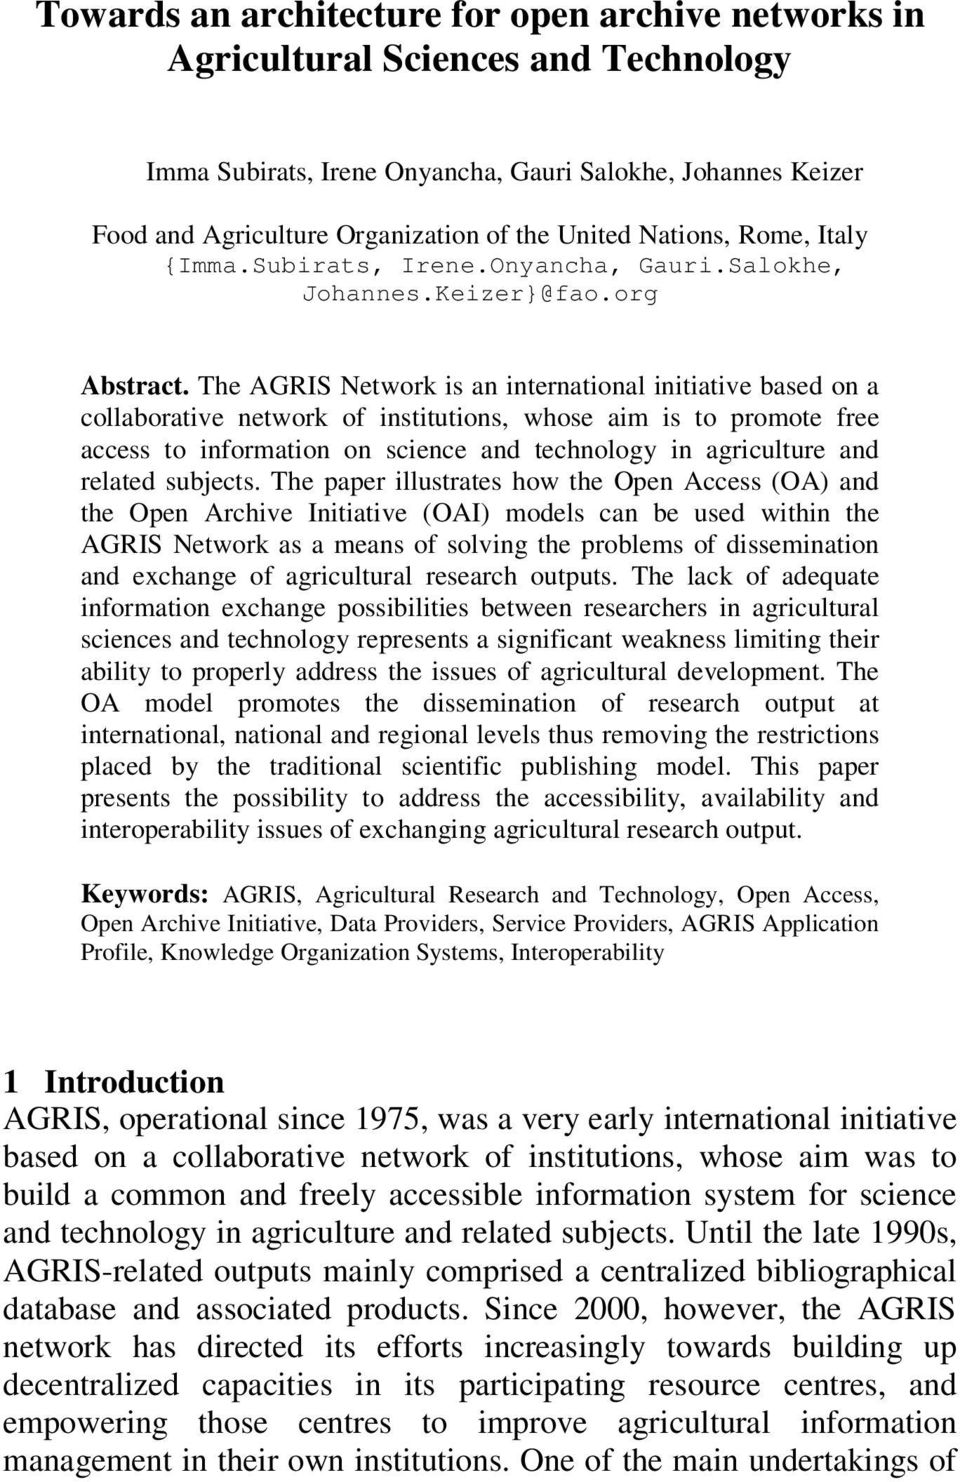 The AGRIS Network is an international initiative based on a collaborative network of institutions, whose aim is to promote free access to information on science and technology in agriculture and